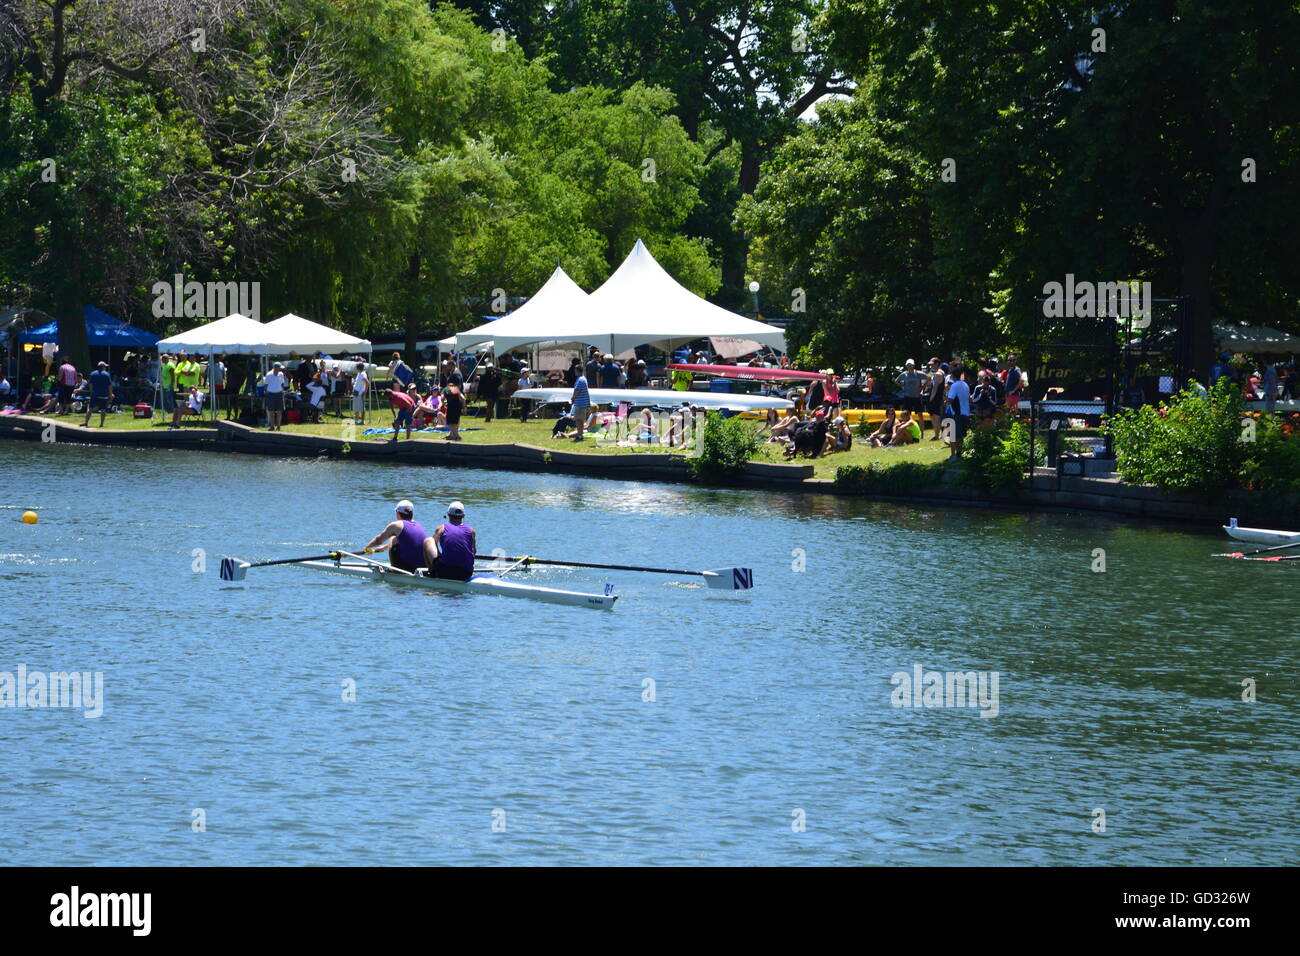 Boats race down the Lincoln Park Lagoon Henley style at the 36th annual running of the Chicago Sprints Regatta, - Stock Image